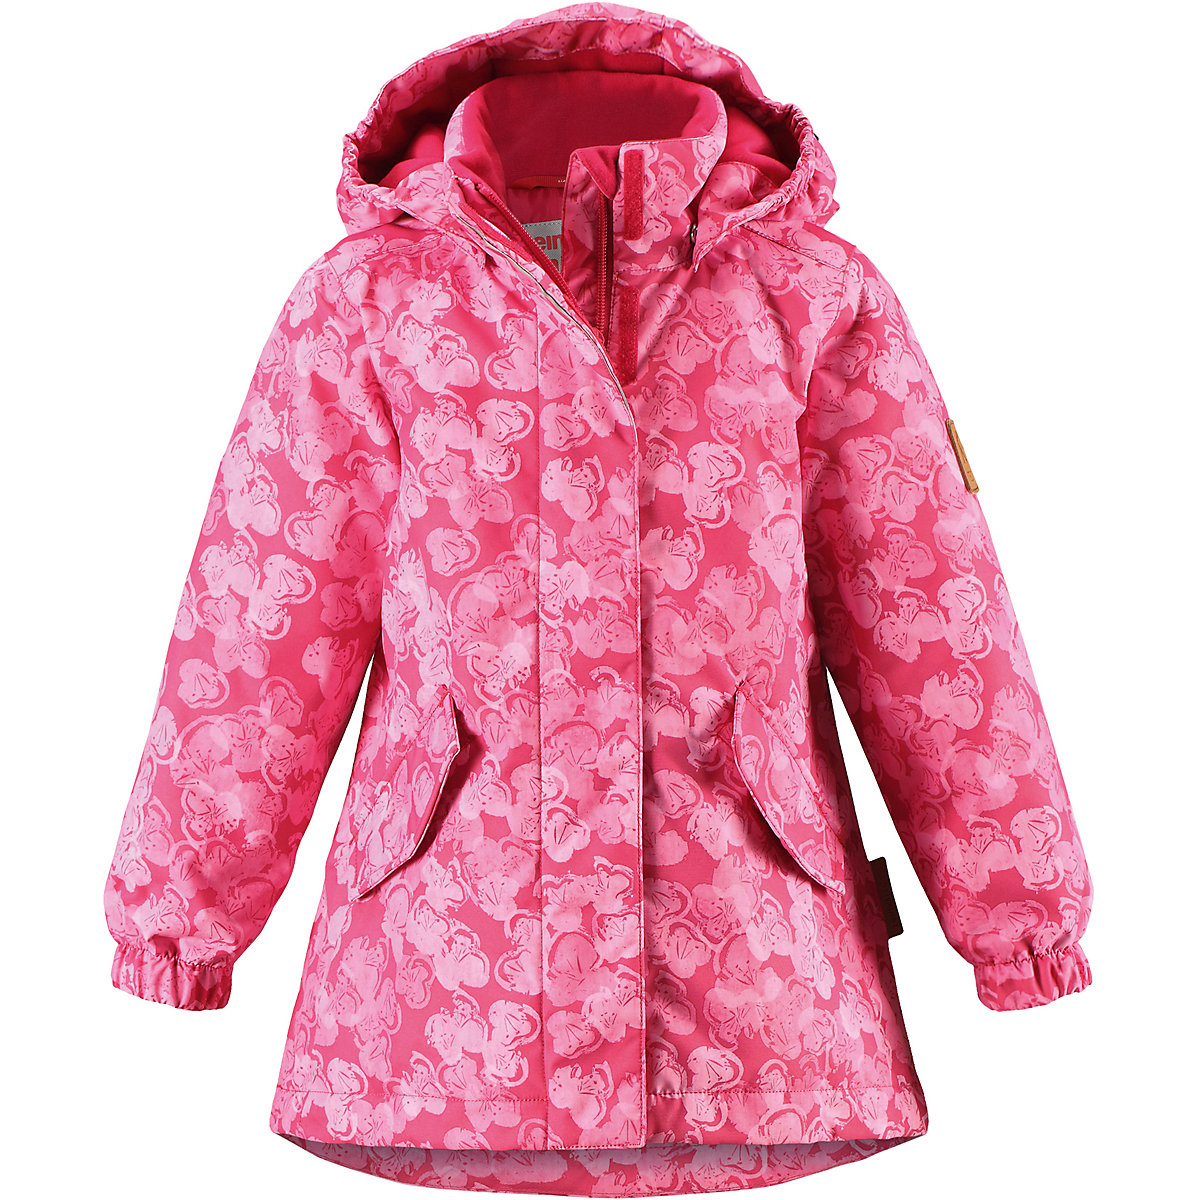 REIMA Jackets & Coats 8688782 for girls baby clothing winter warm boy girl jacket Polyester newborn baby boy girl infant warm cotton outfit jumpsuit romper bodysuit clothes